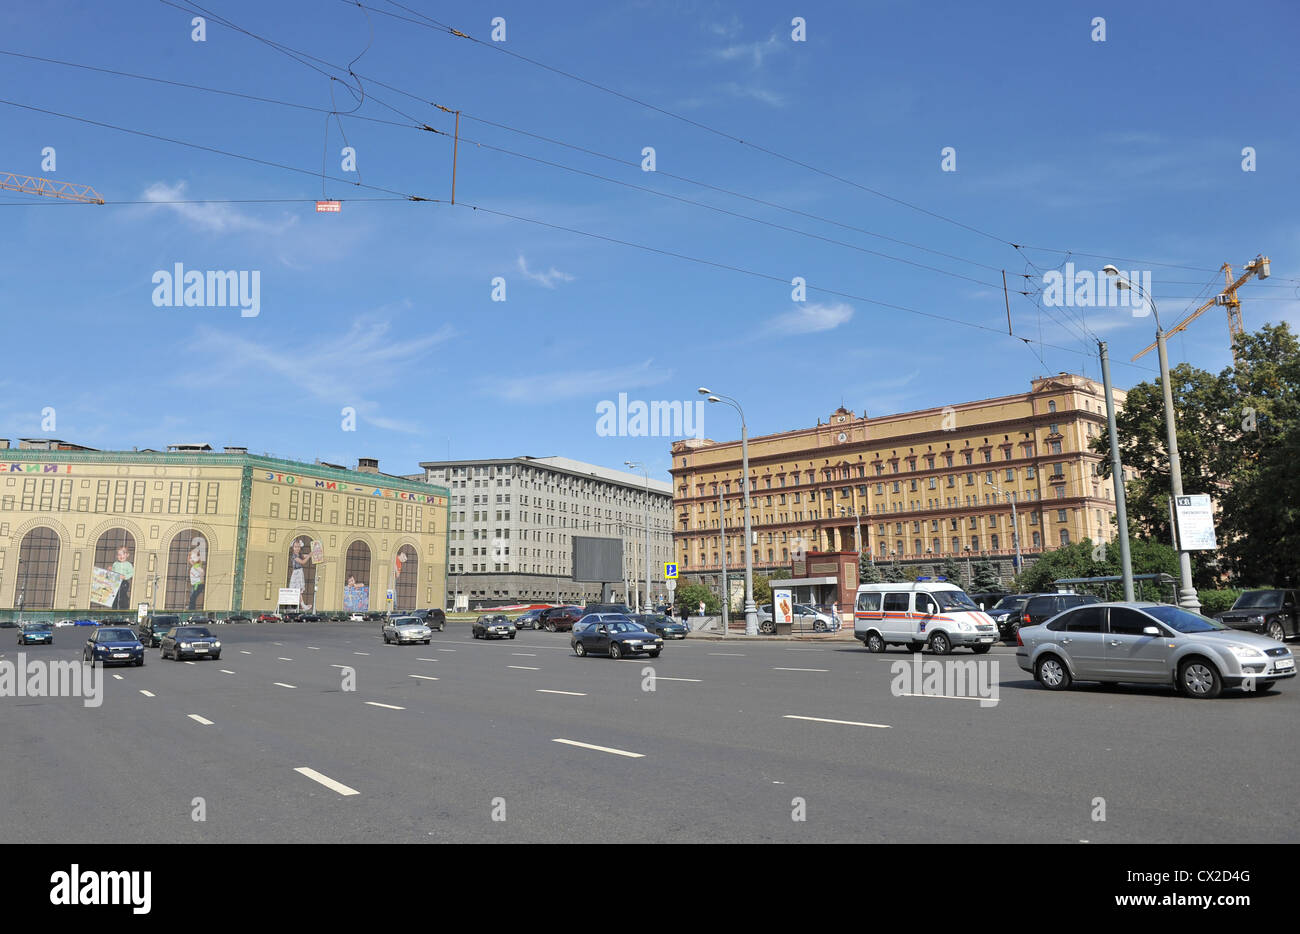 ITAR-TASS: MOSCOW, RUSSIA. AUGUST 24, 2011. A view of Lubyanka Square, where lots of street banners spanning the - Stock Image